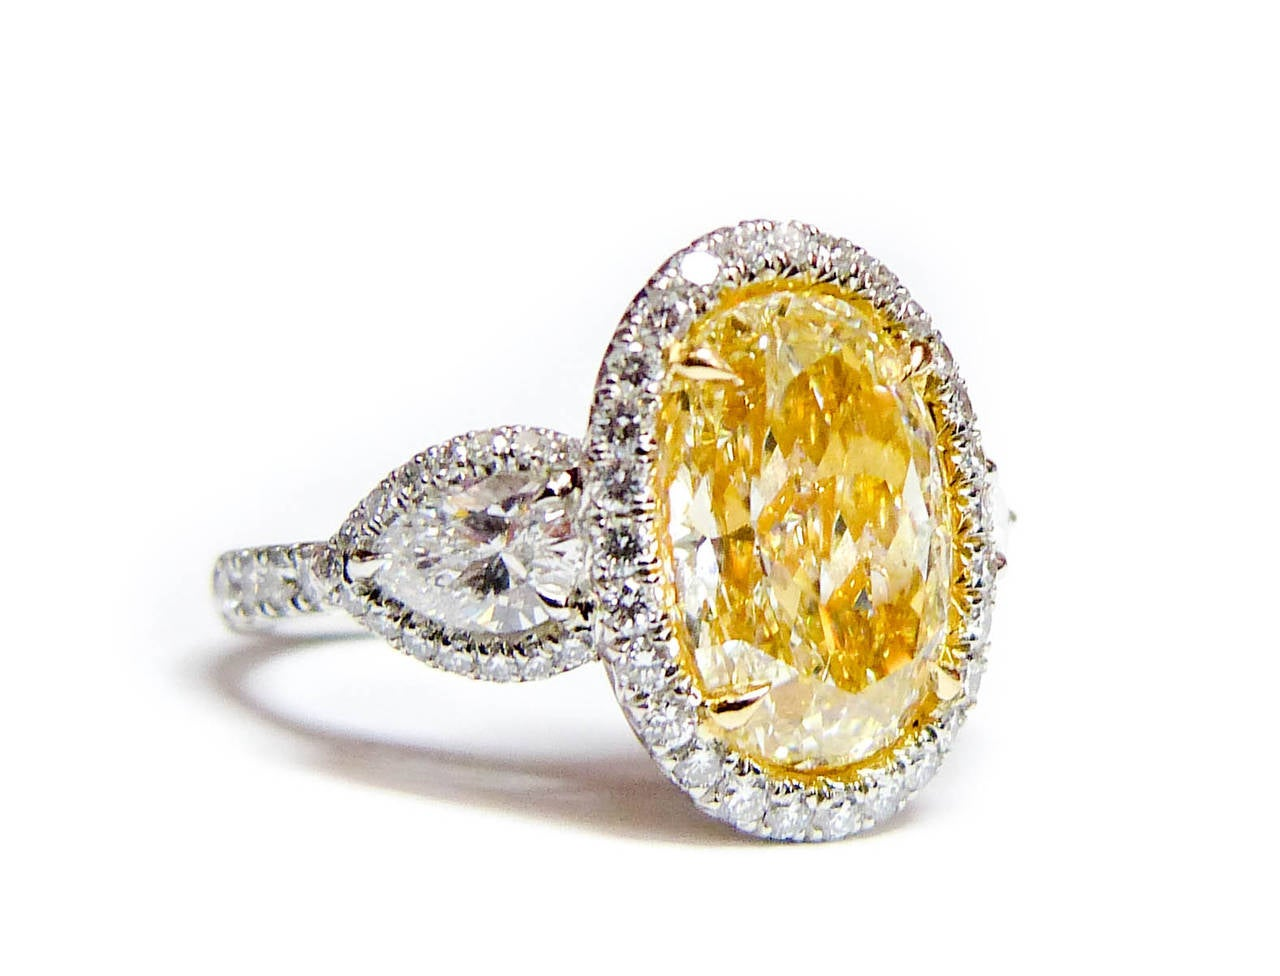 6 Carat Canary Yellow Diamond Ring For Sale at 1stdibs